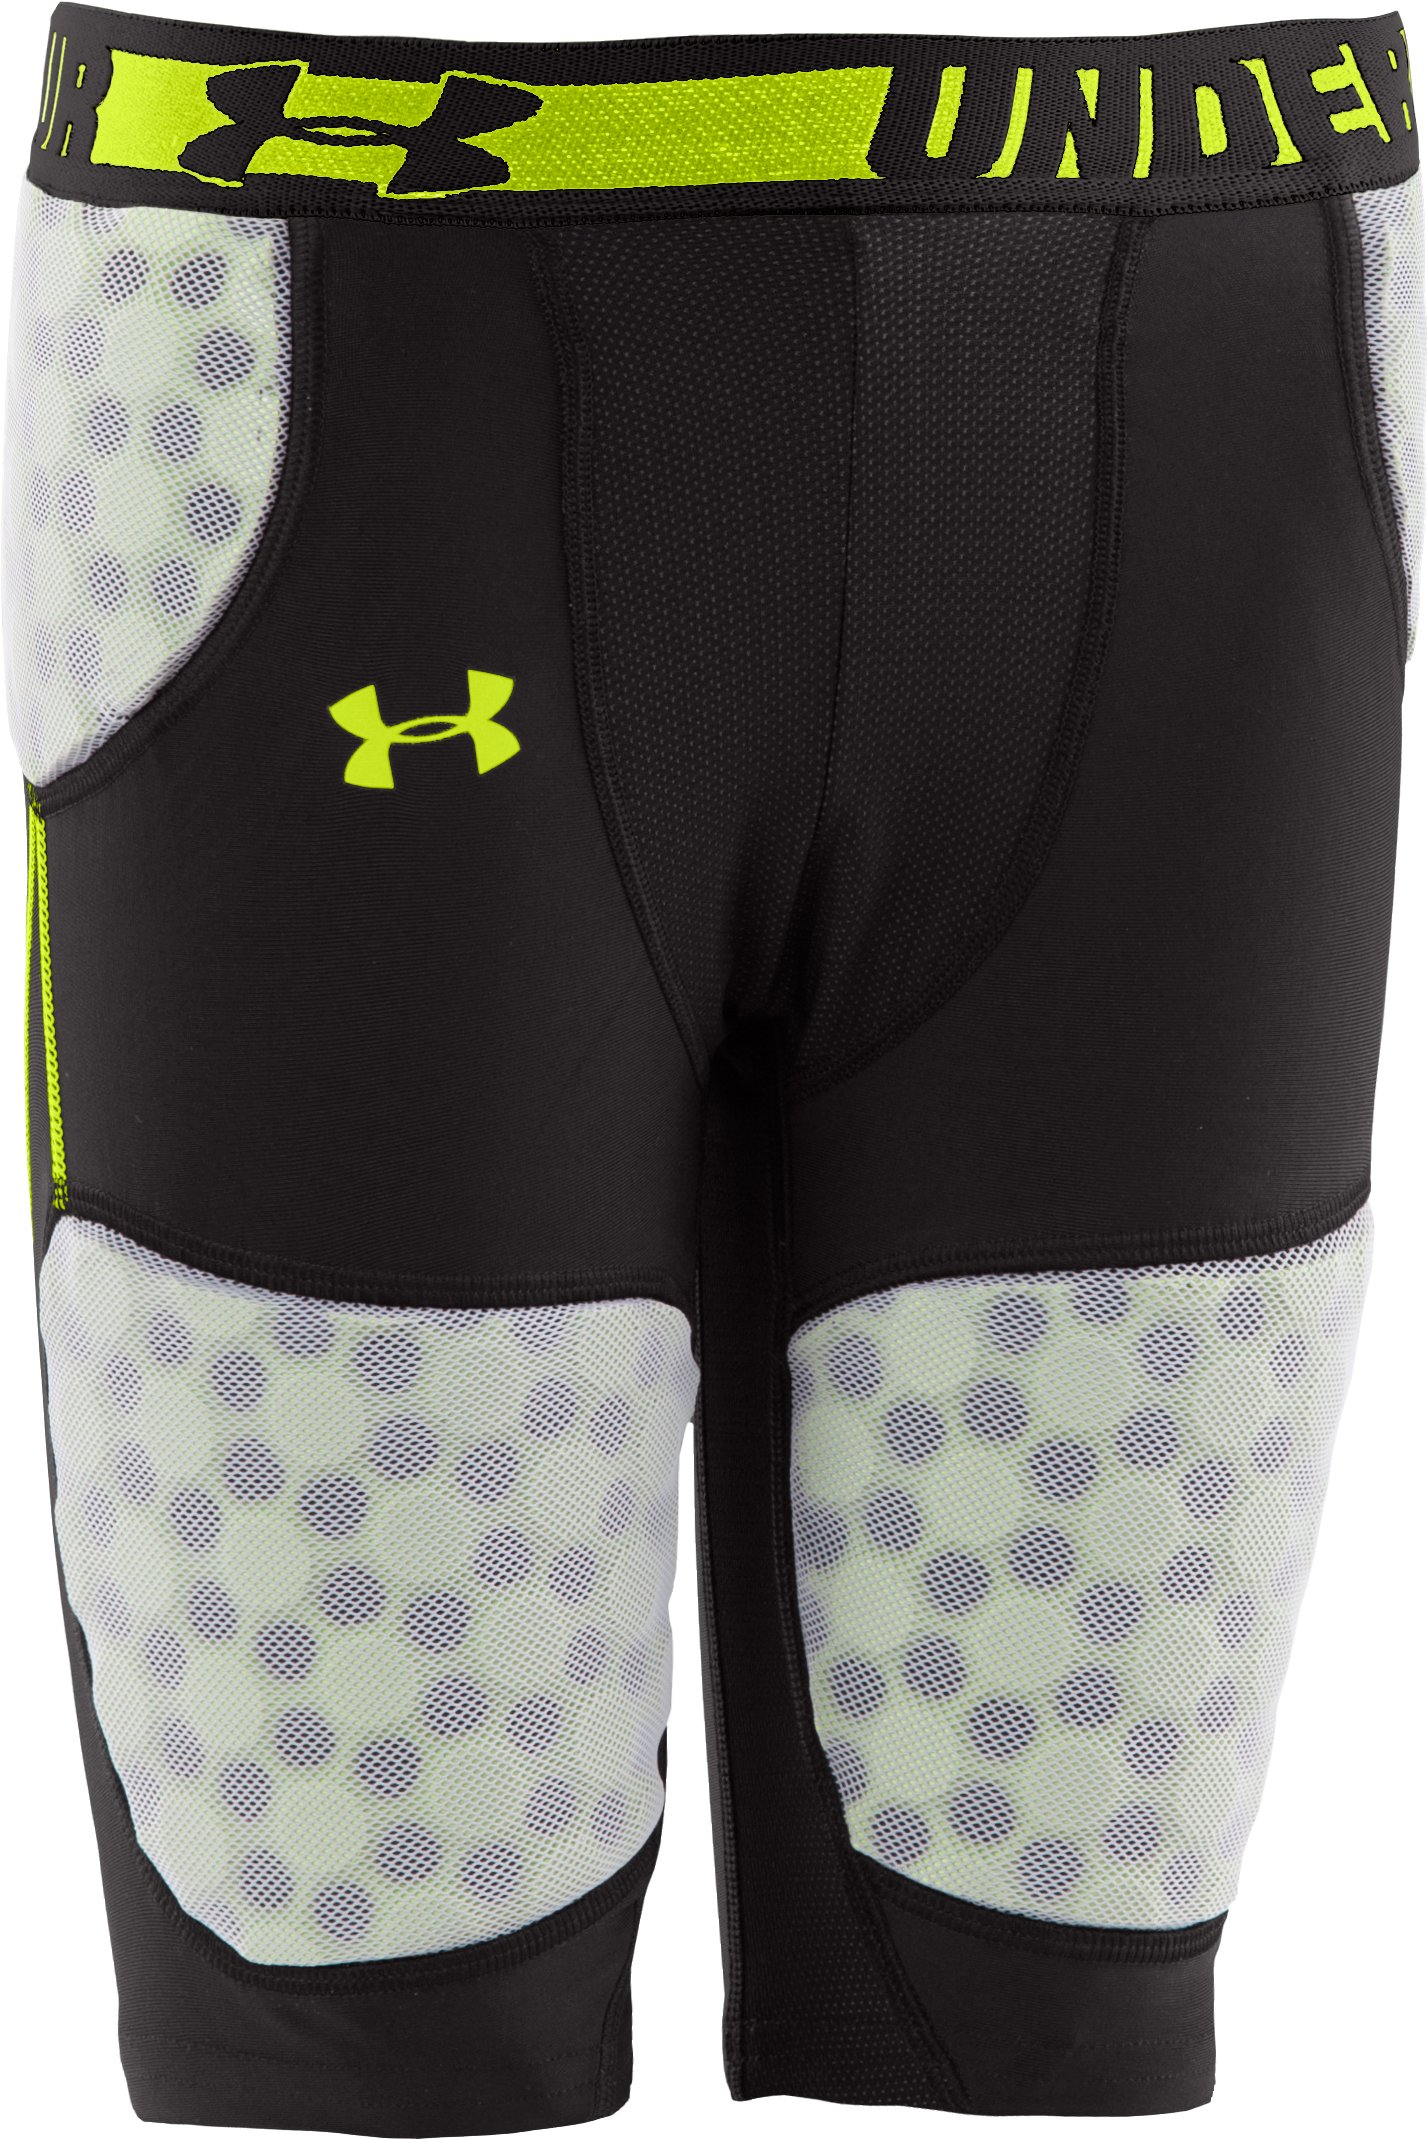 Boys' UA 5-Pad Football Girdle, Black